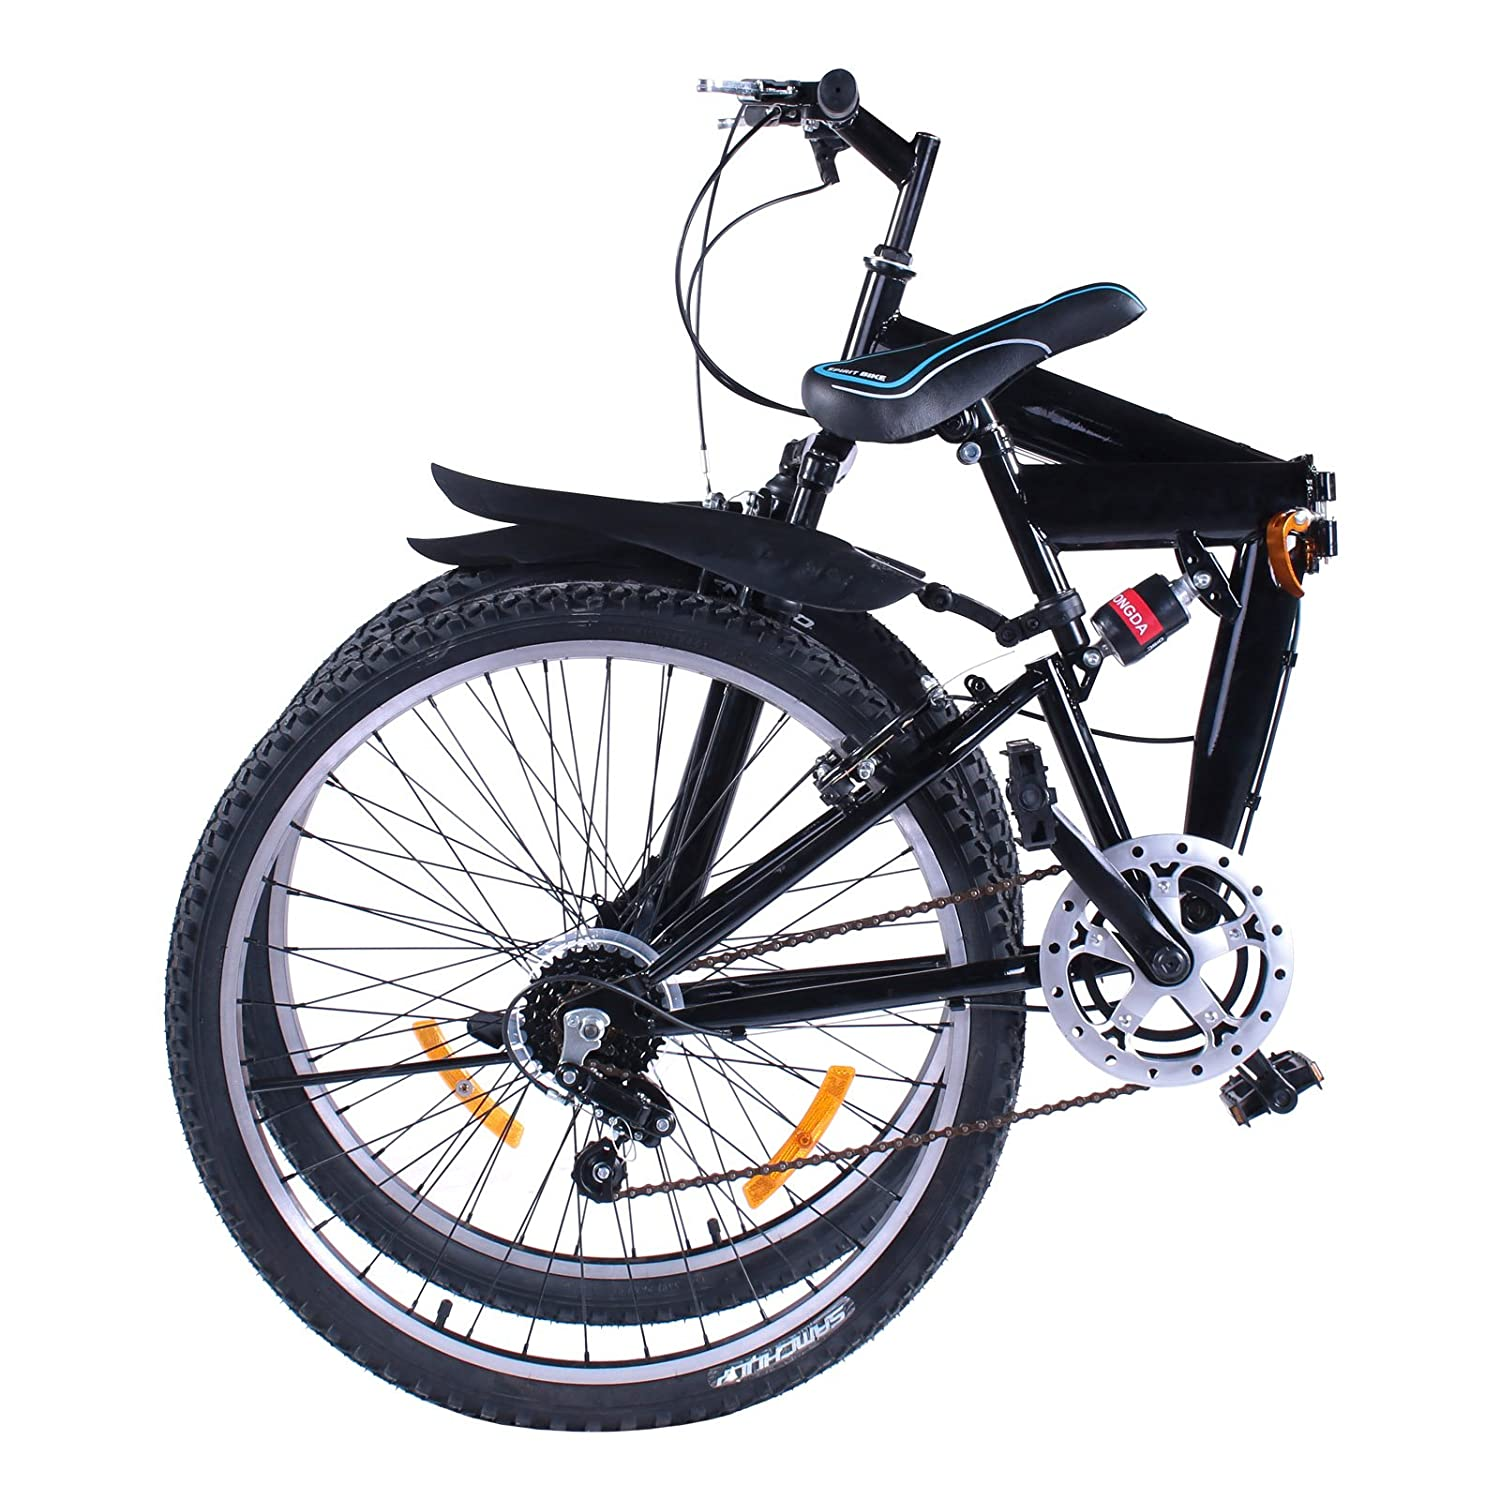 VEVOR Folding Mountain Bike